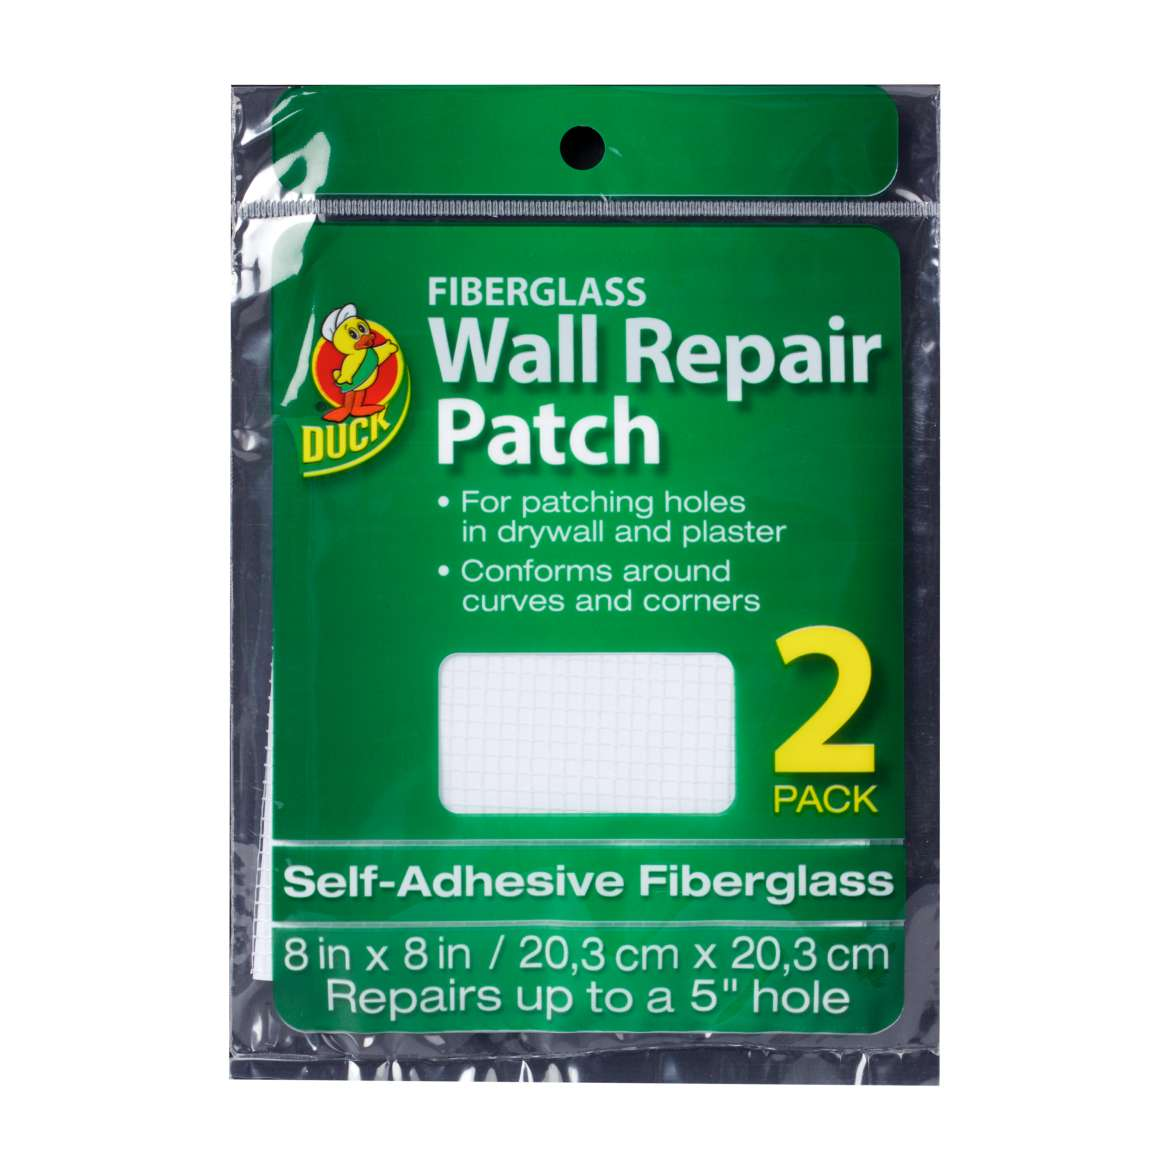 Fiberglass Wall Repair Patch